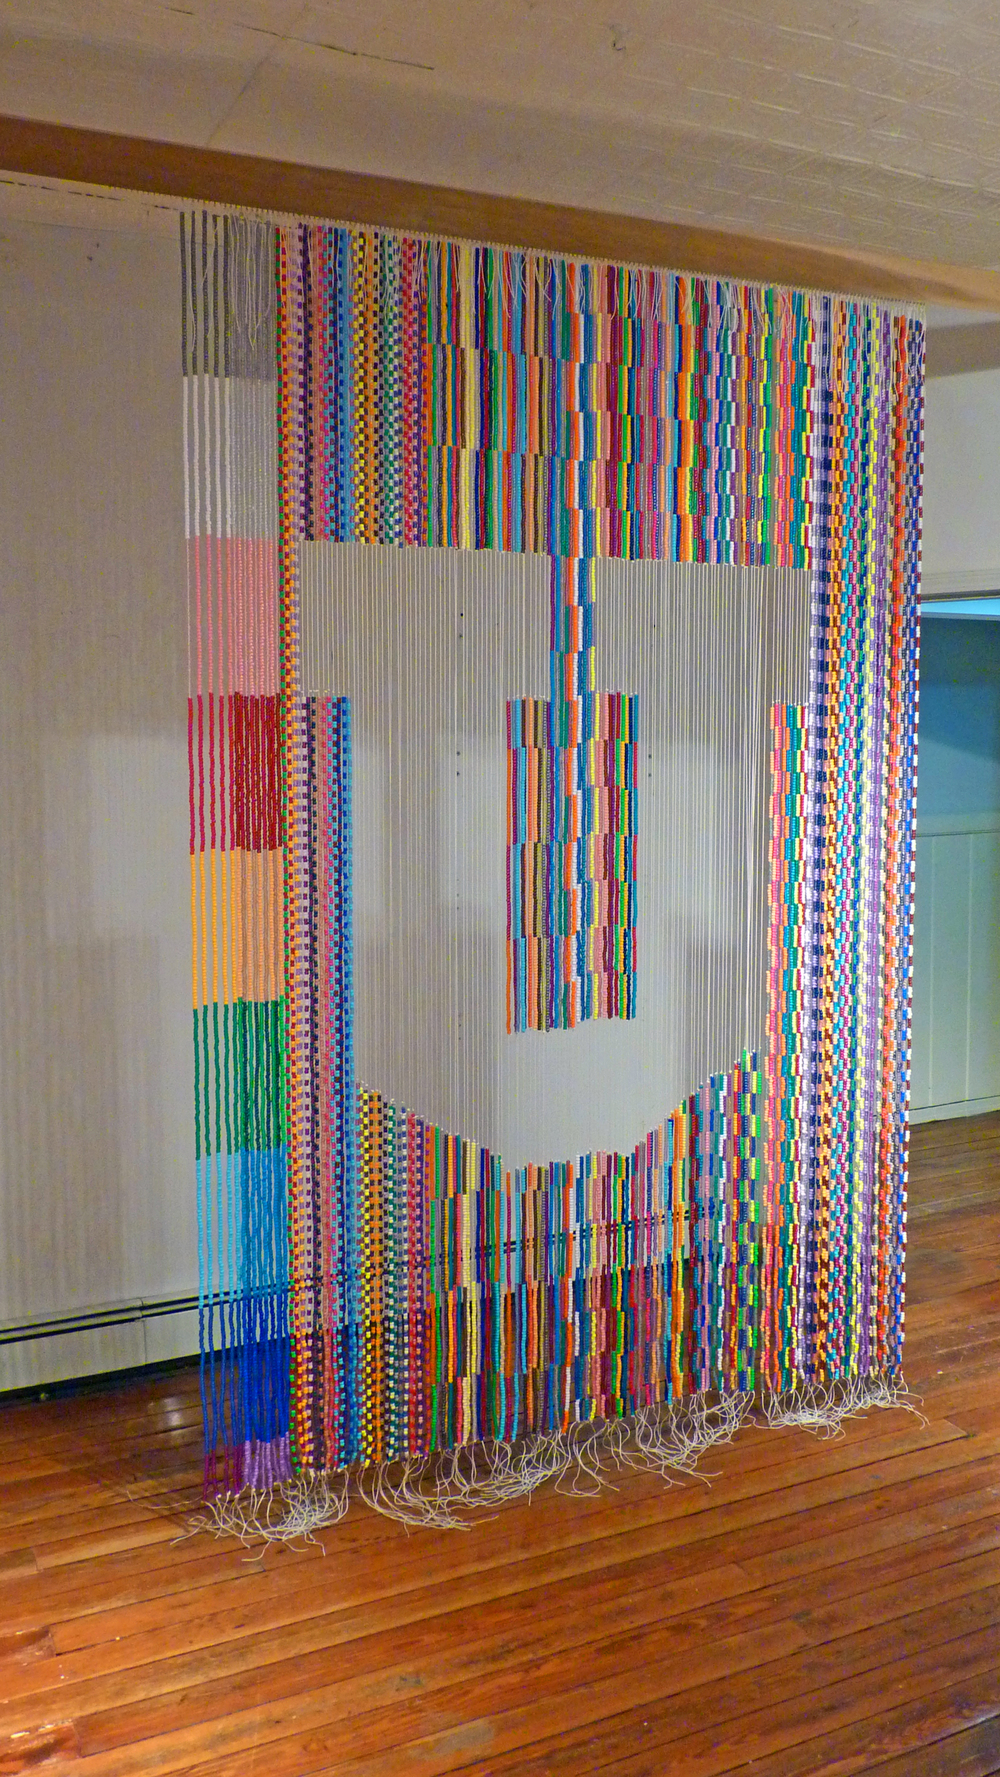 "Untitled (The Big ""U""), 2009, Plastic beads, nylon, metal and wood, 6' x 8'"